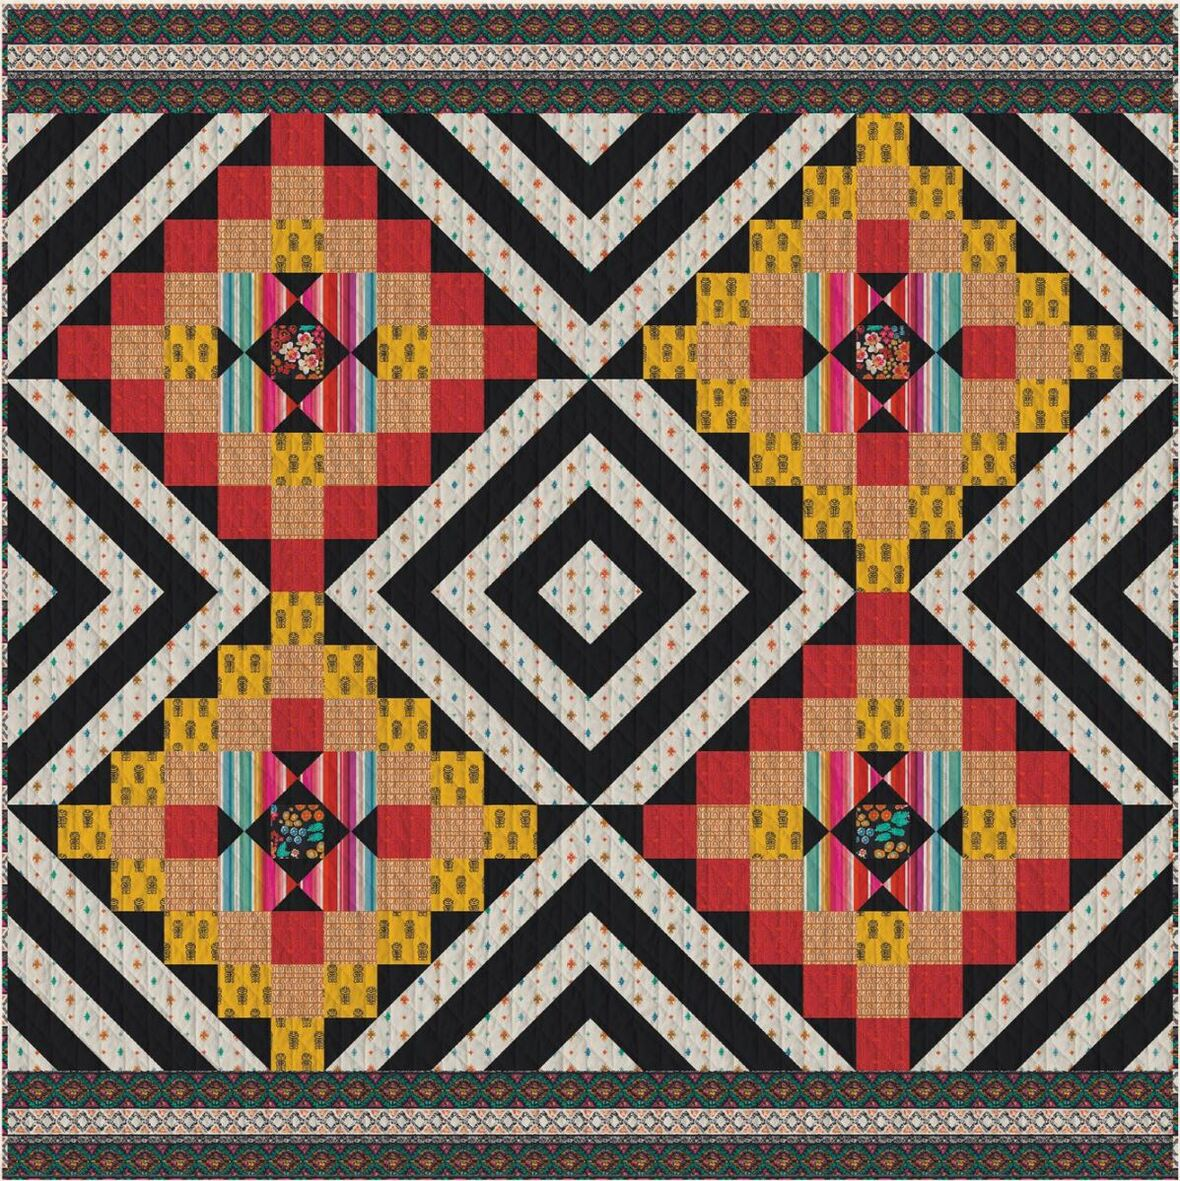 Andina Free Quilt Pattern